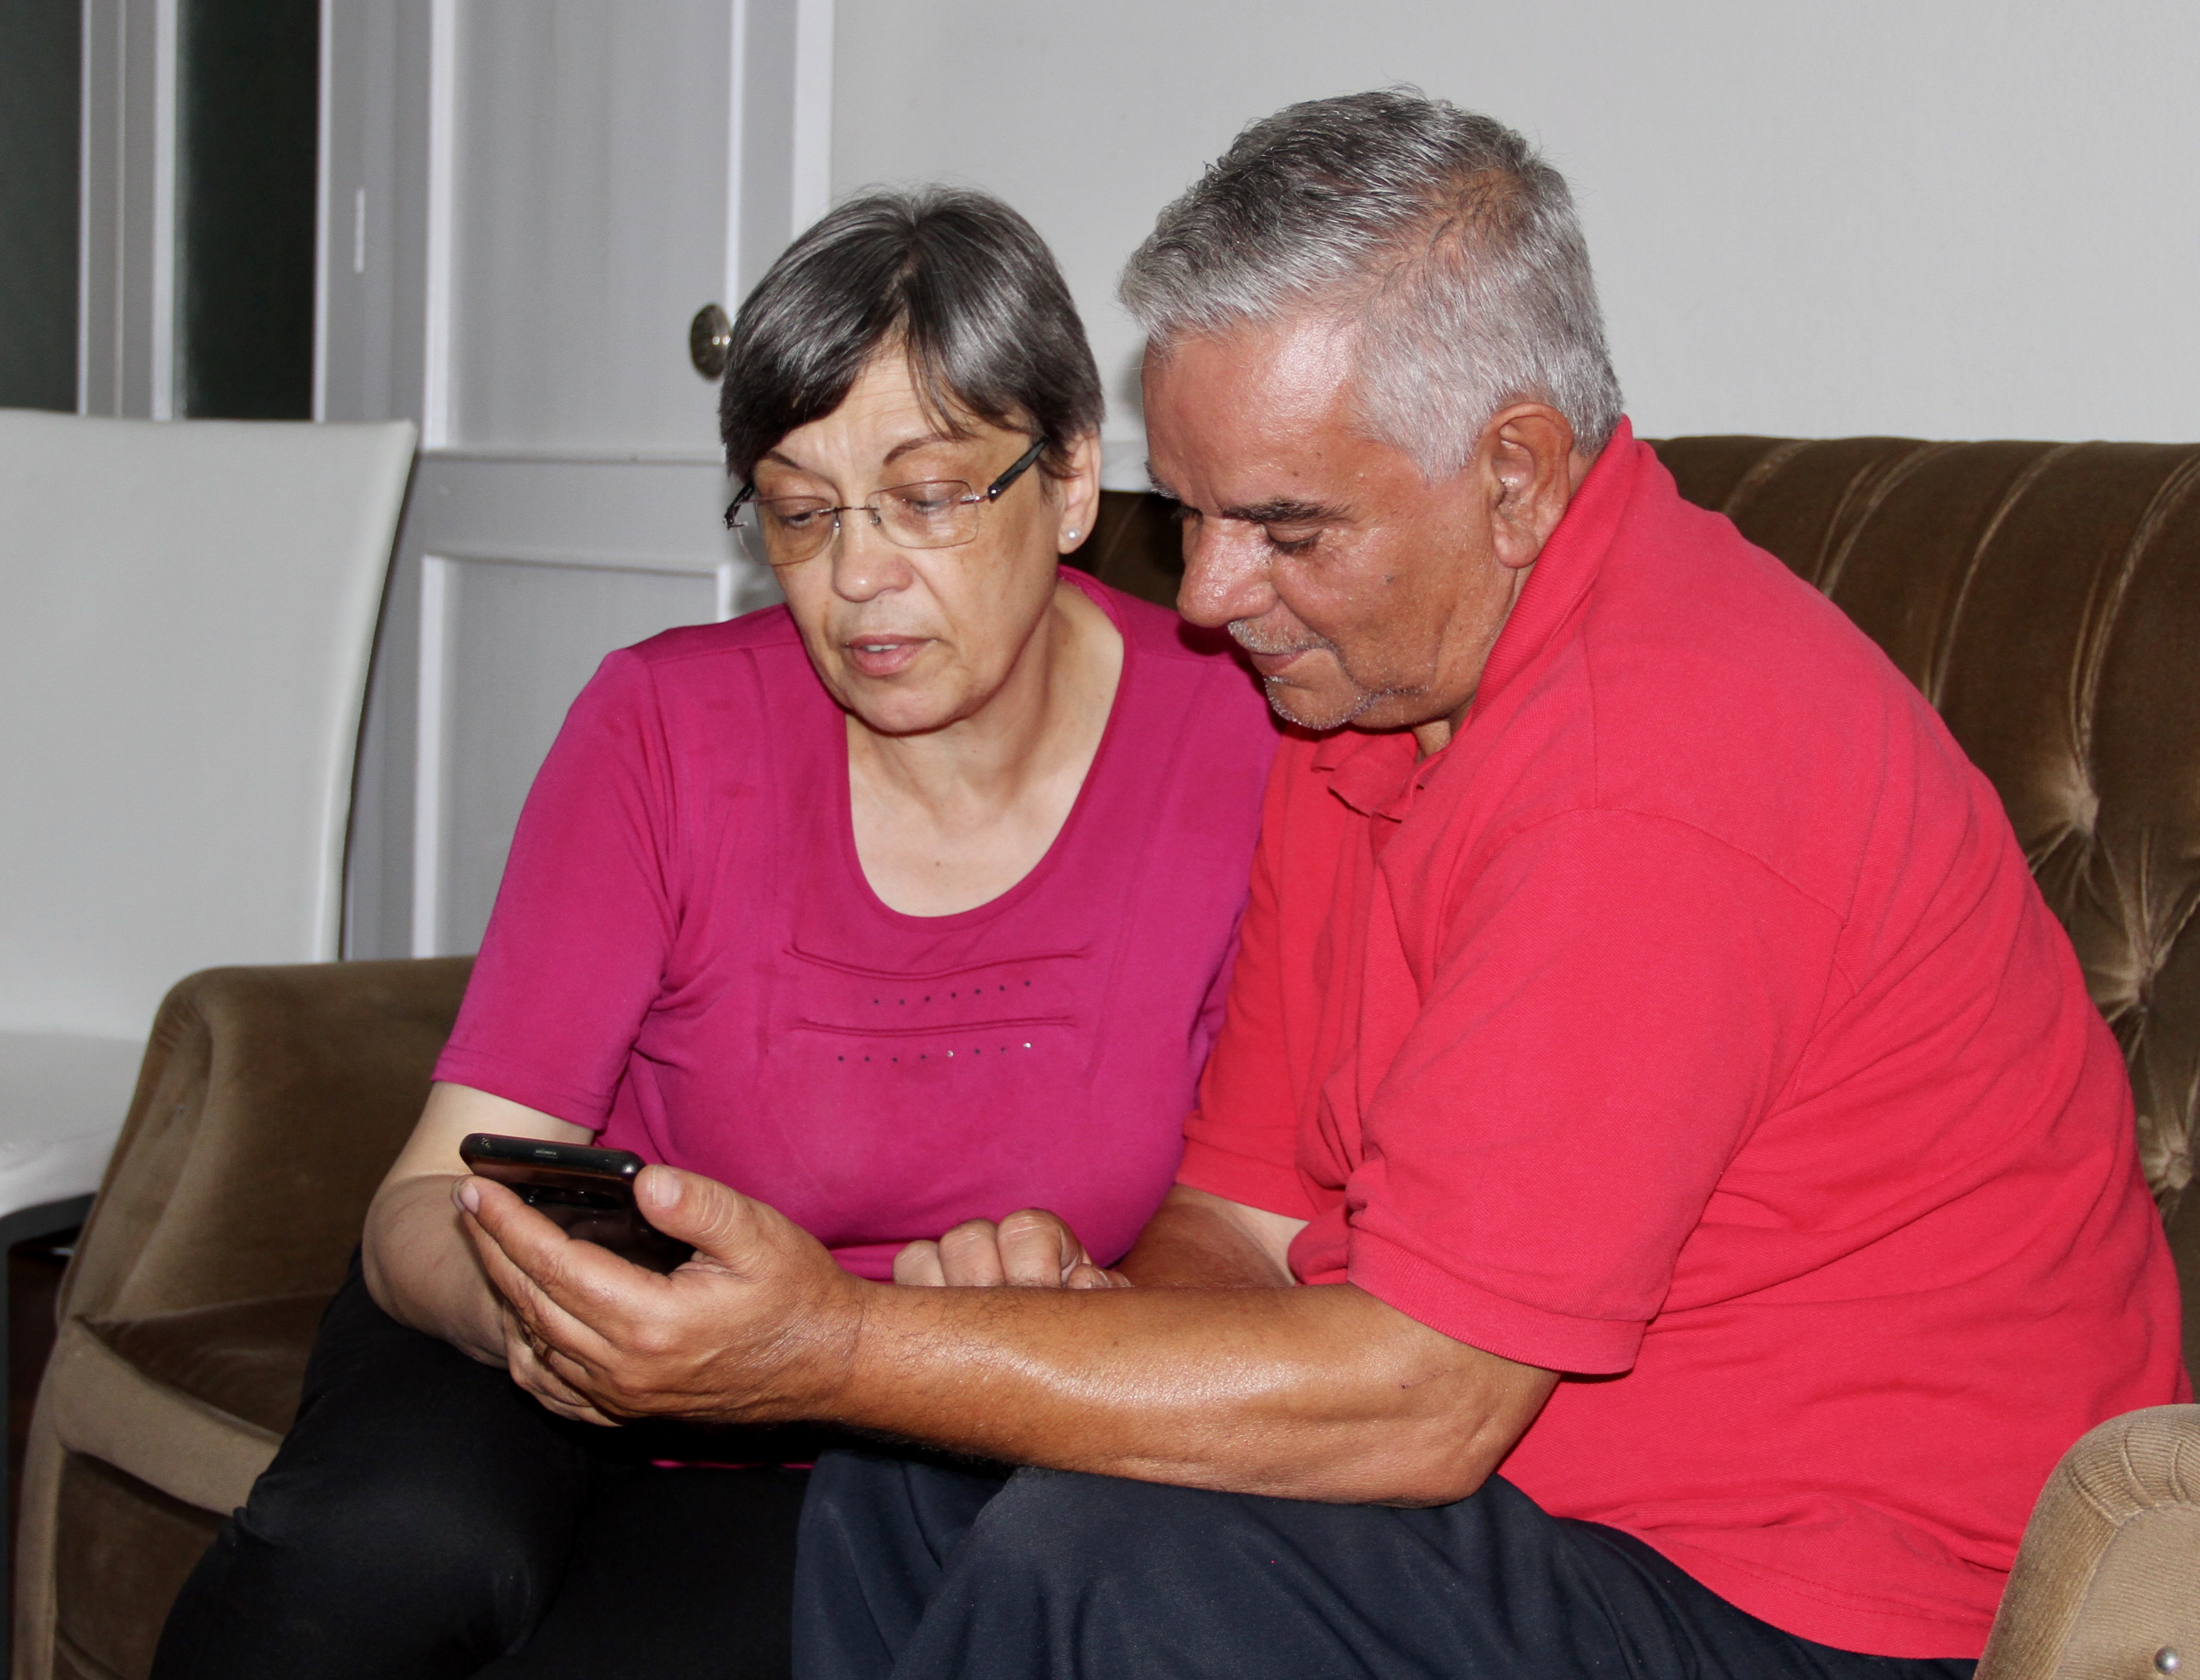 Nair Alves and Luís Alves read coverage of the Lisbon Portugal Temple dedication on a smartphone in their home in Angra, Terceira Island, Azores, on Sept. 16, 2019. The Alves have since left for Lisbon for a year-long service mission at the same temple.